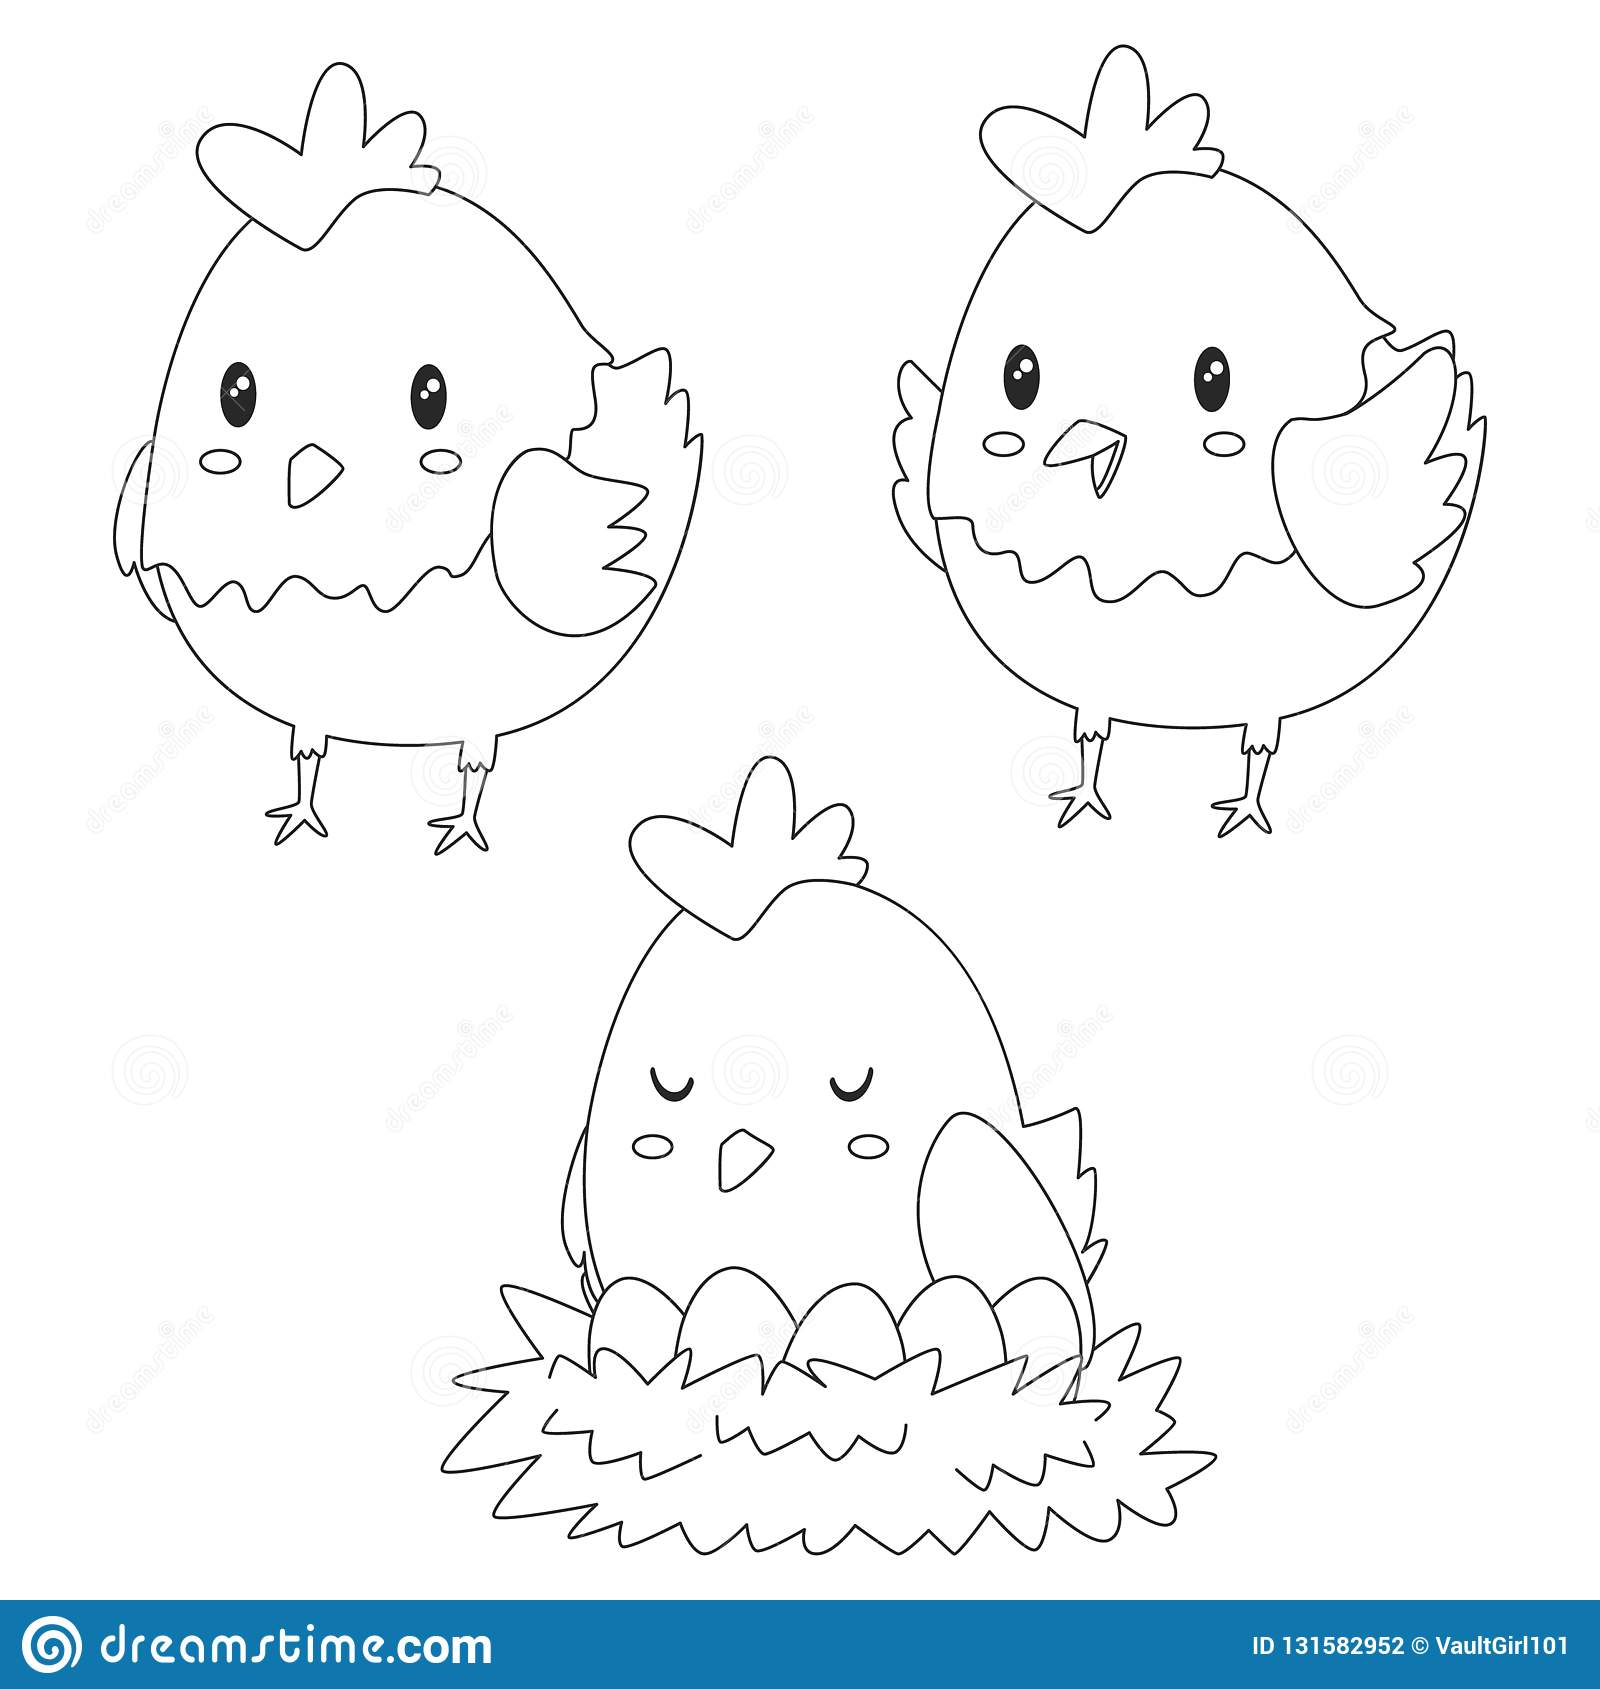 image regarding Chicken Printable titled Lovable Chook, Fowl Coloring Webpage Vector Layout Inventory Vector